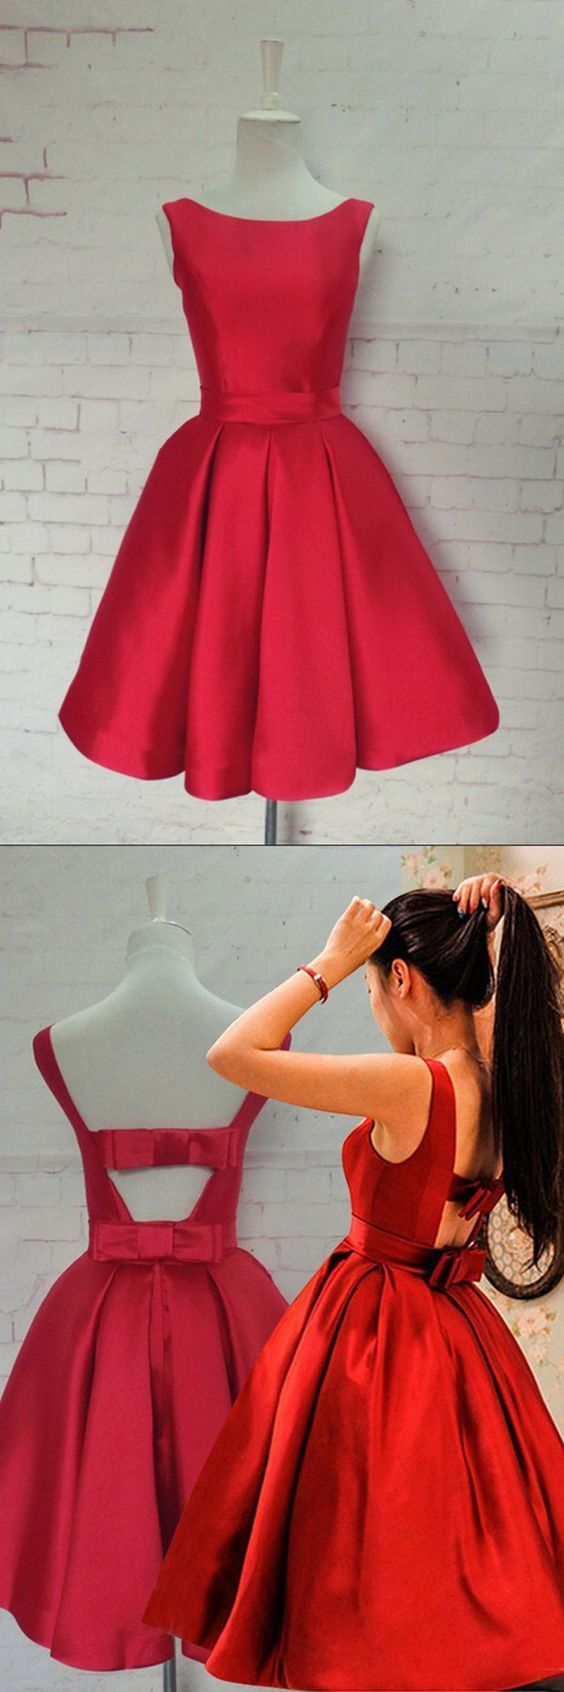 Short Sexy Red Satin Prom Dress,Knee-length Homecoming Dresses with bow , Open Back Prom Dress for teens